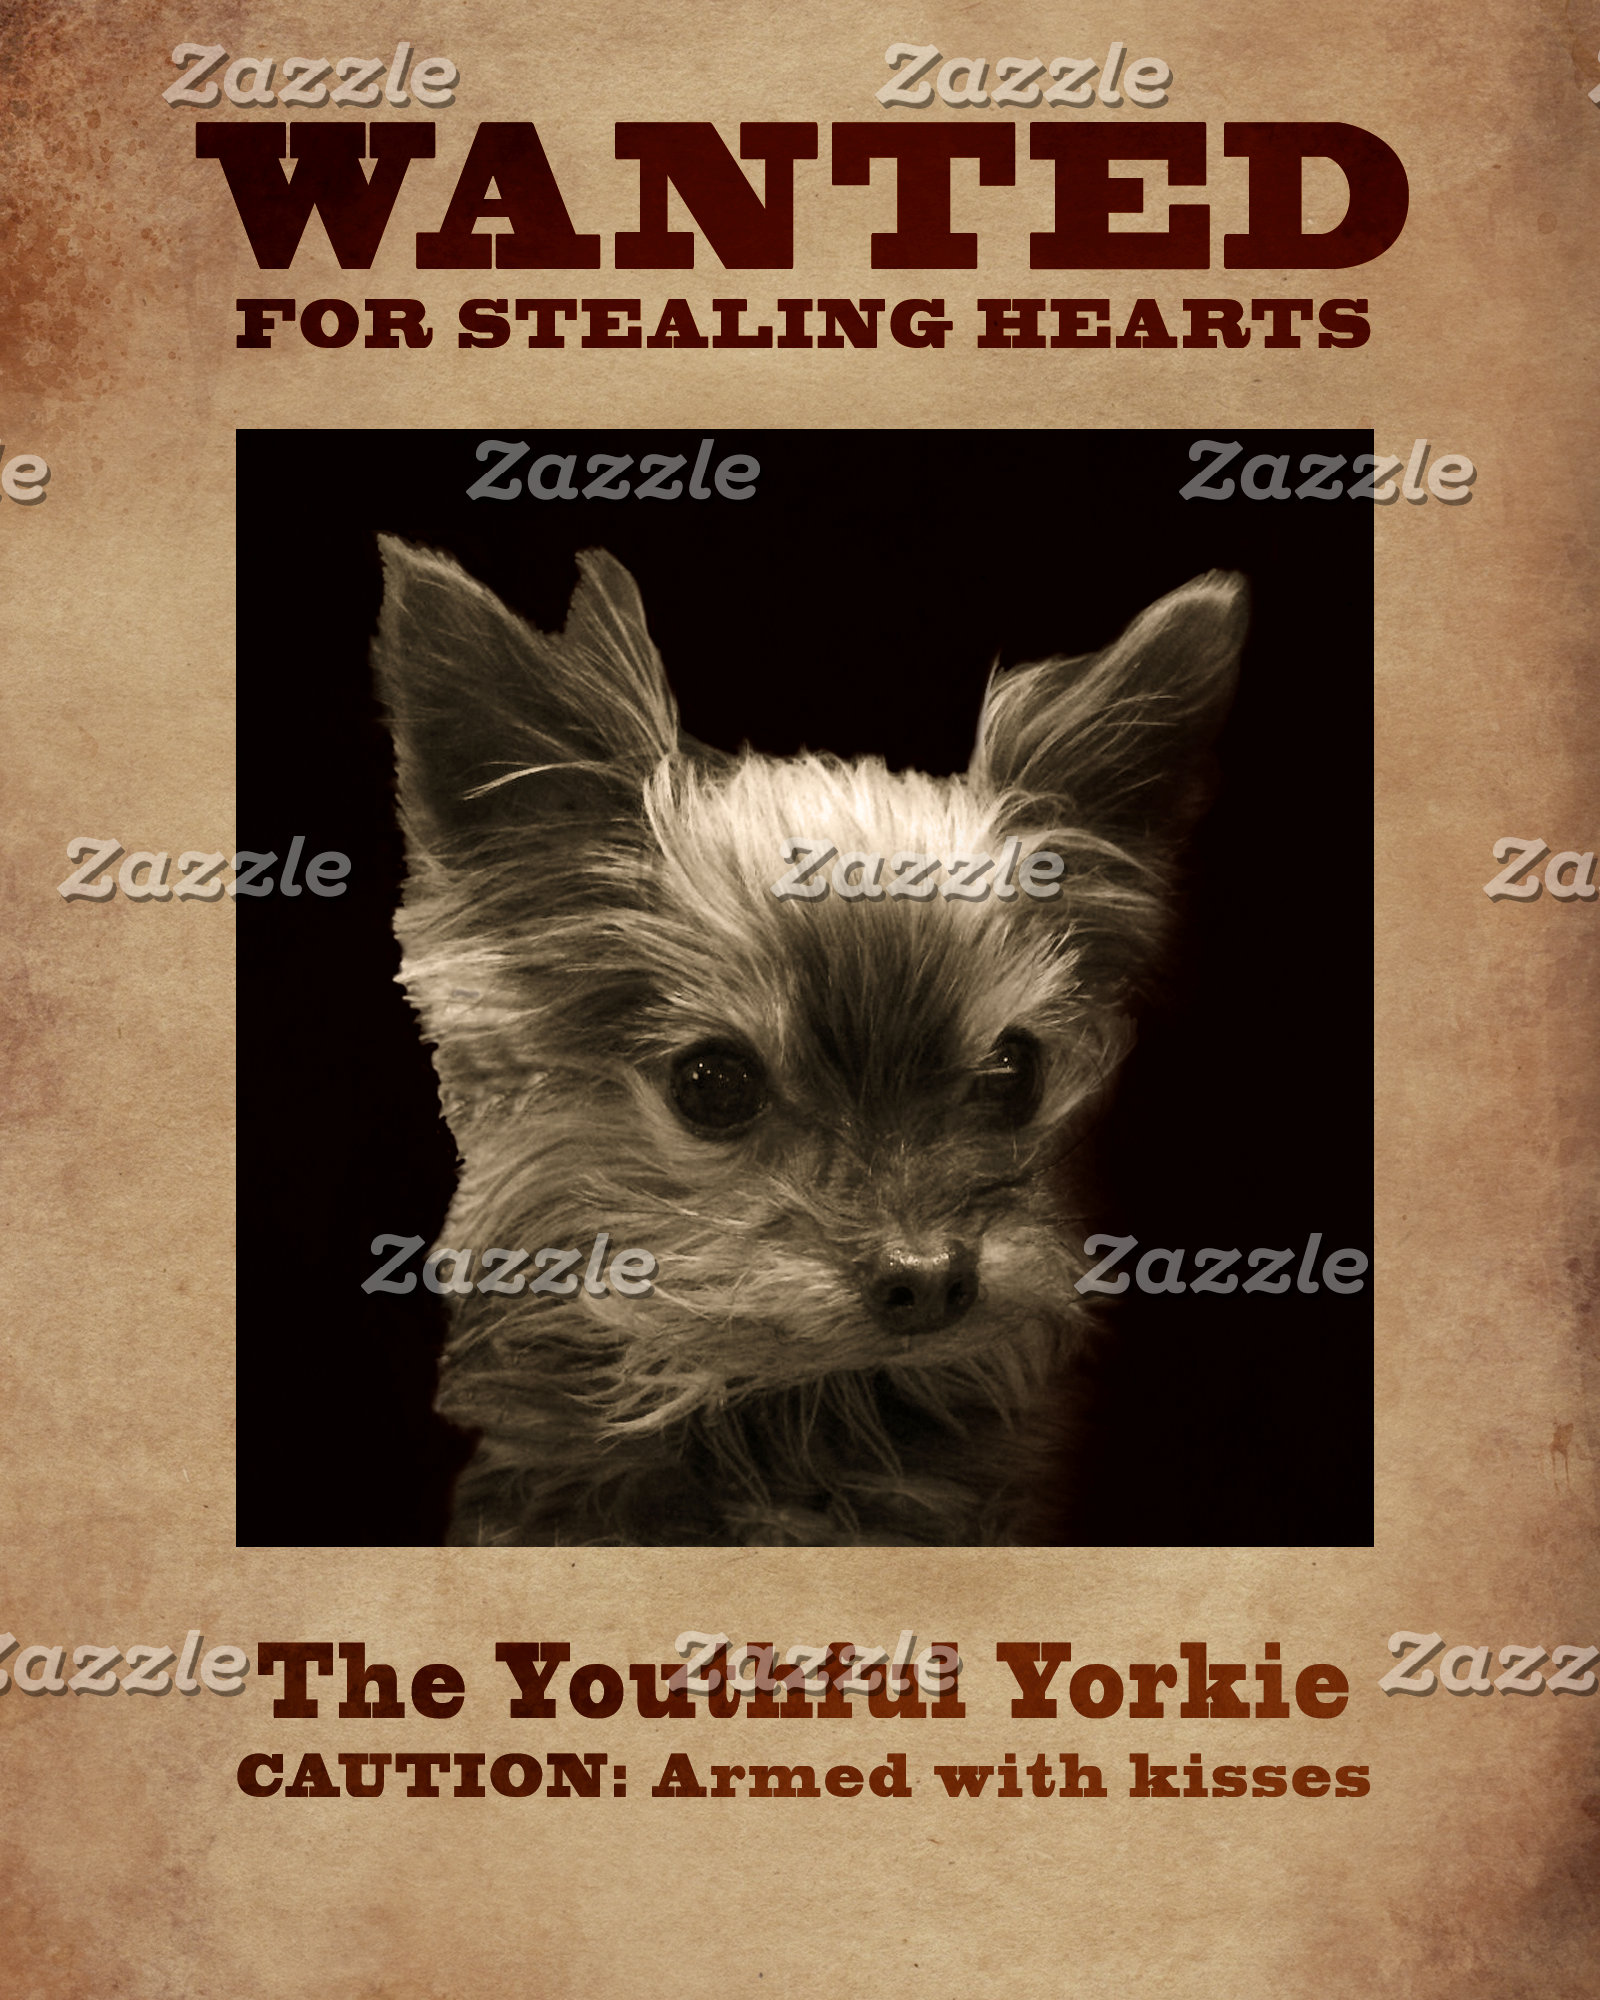 The  Youthful Yorkie